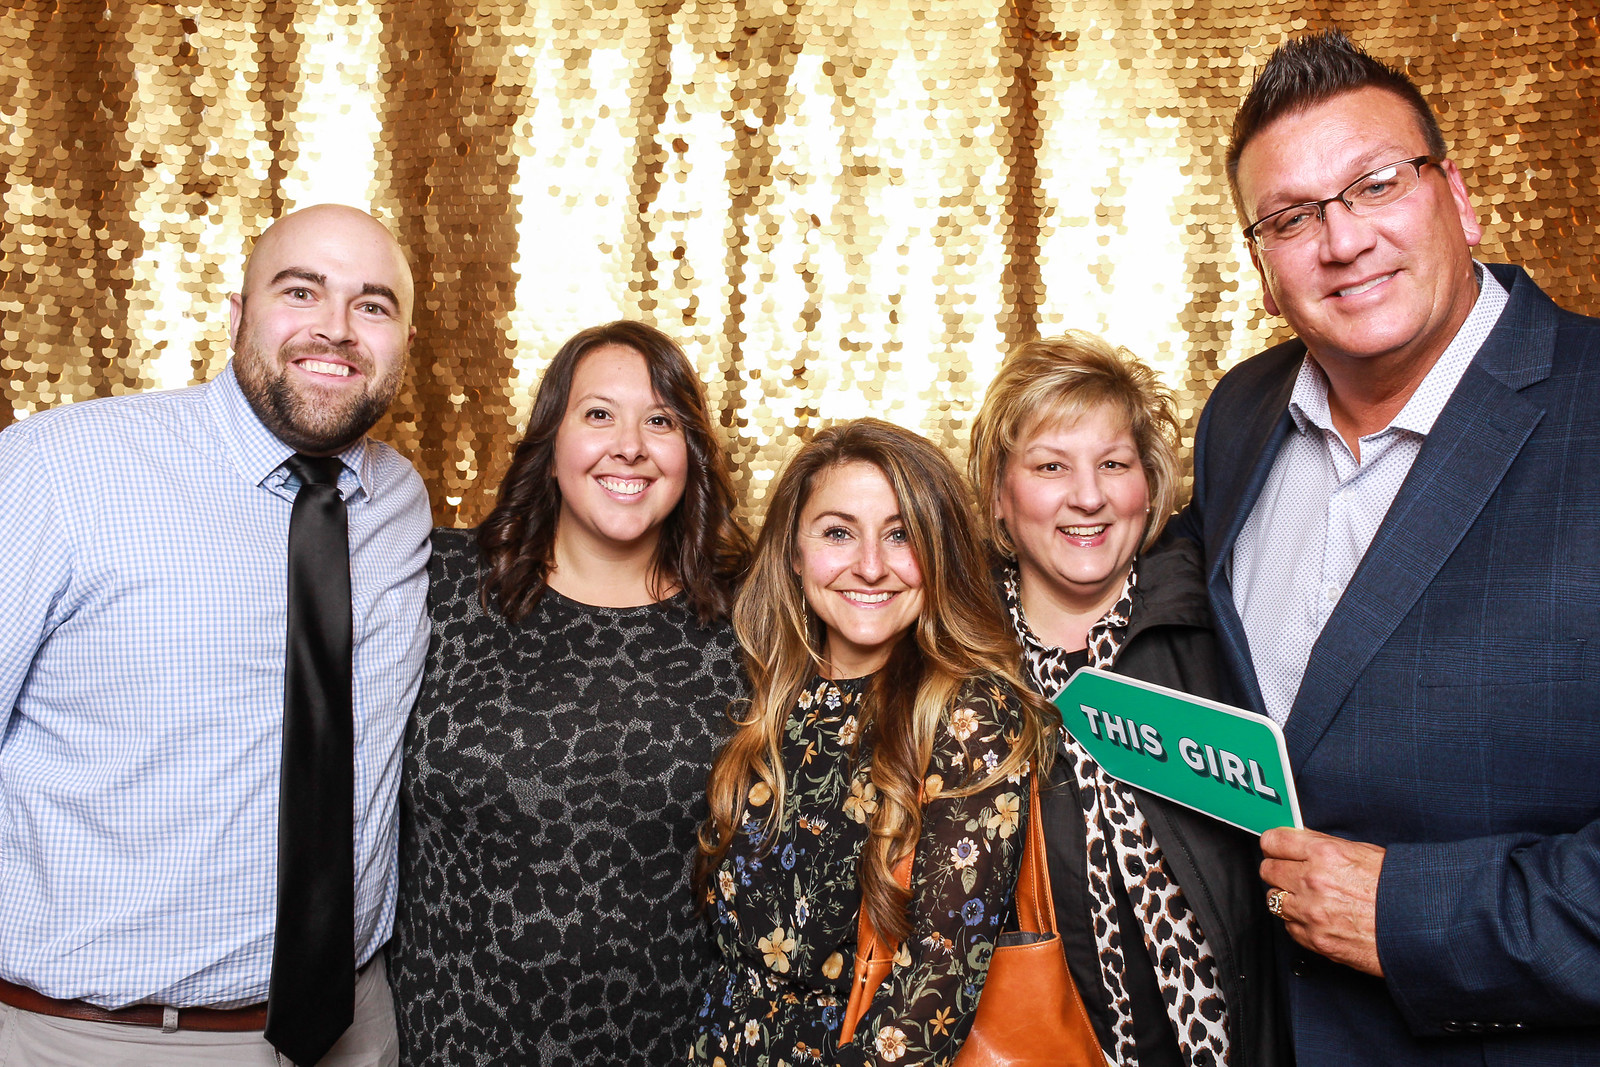 Wedding guest photo booth